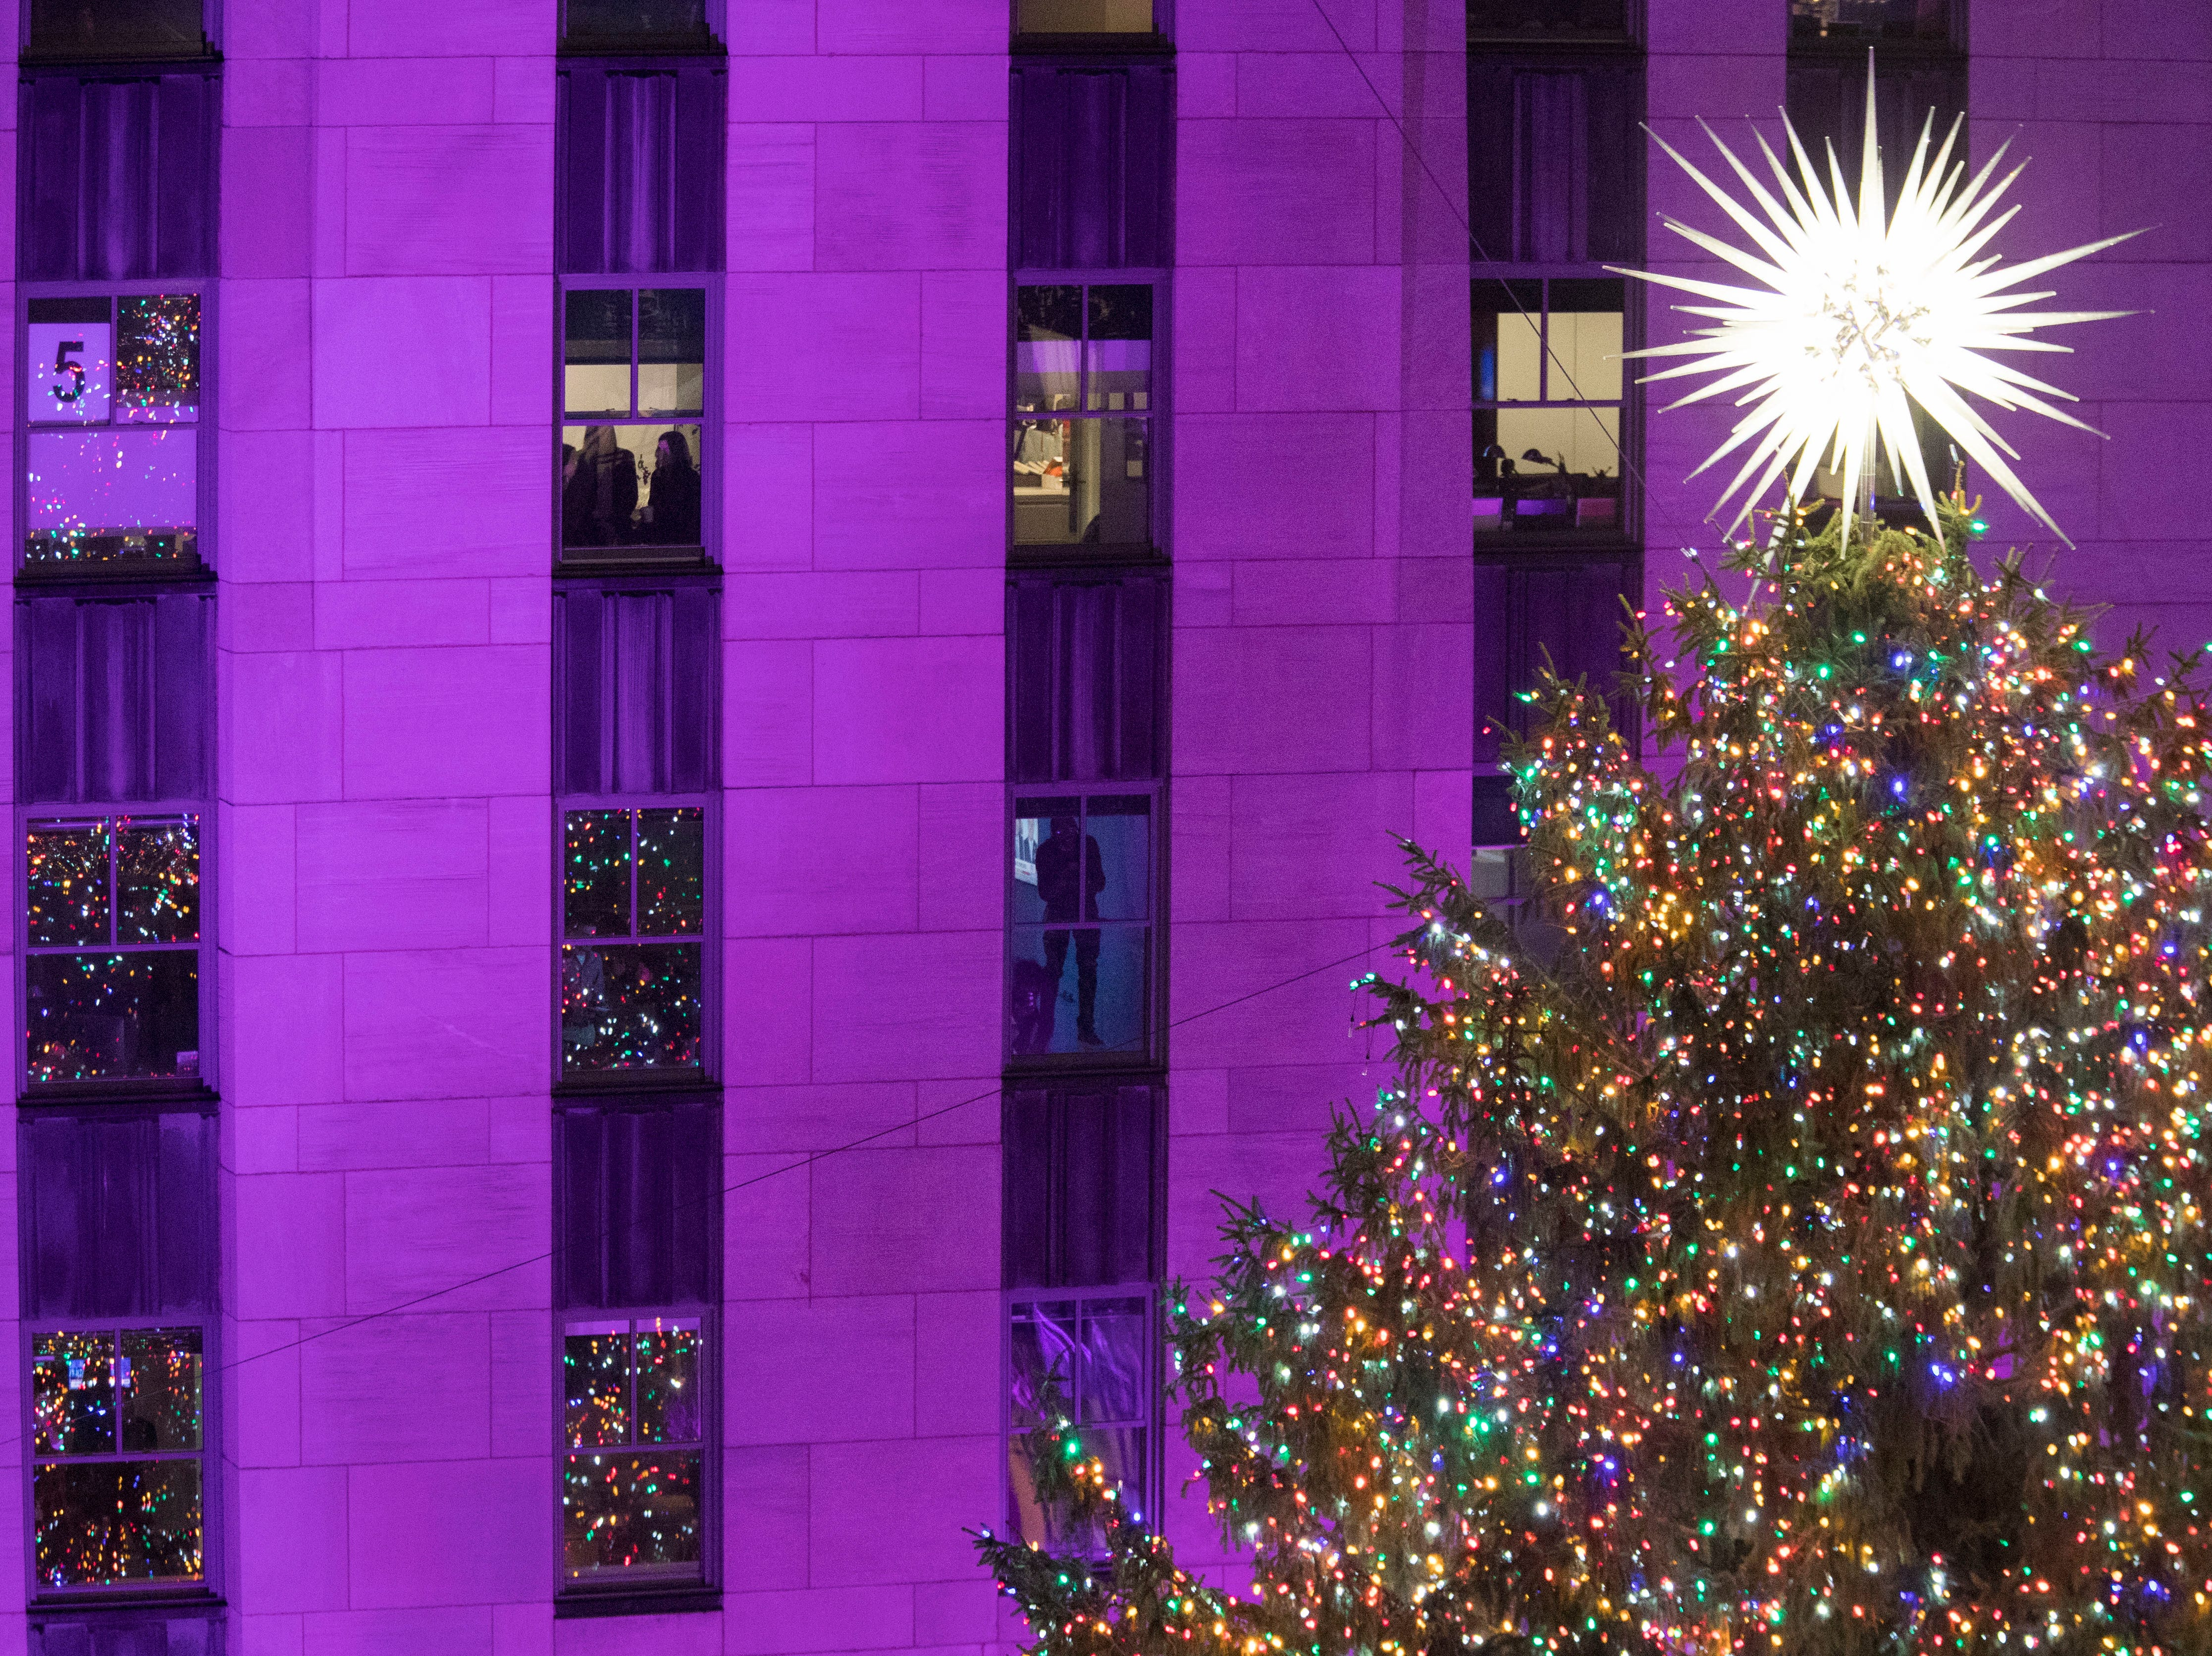 People watch as the Christmas tree is lit during the 86th annual Rockefeller Center Christmas tree lighting ceremony, Wednesday, Nov. 28, 2018, in New York.